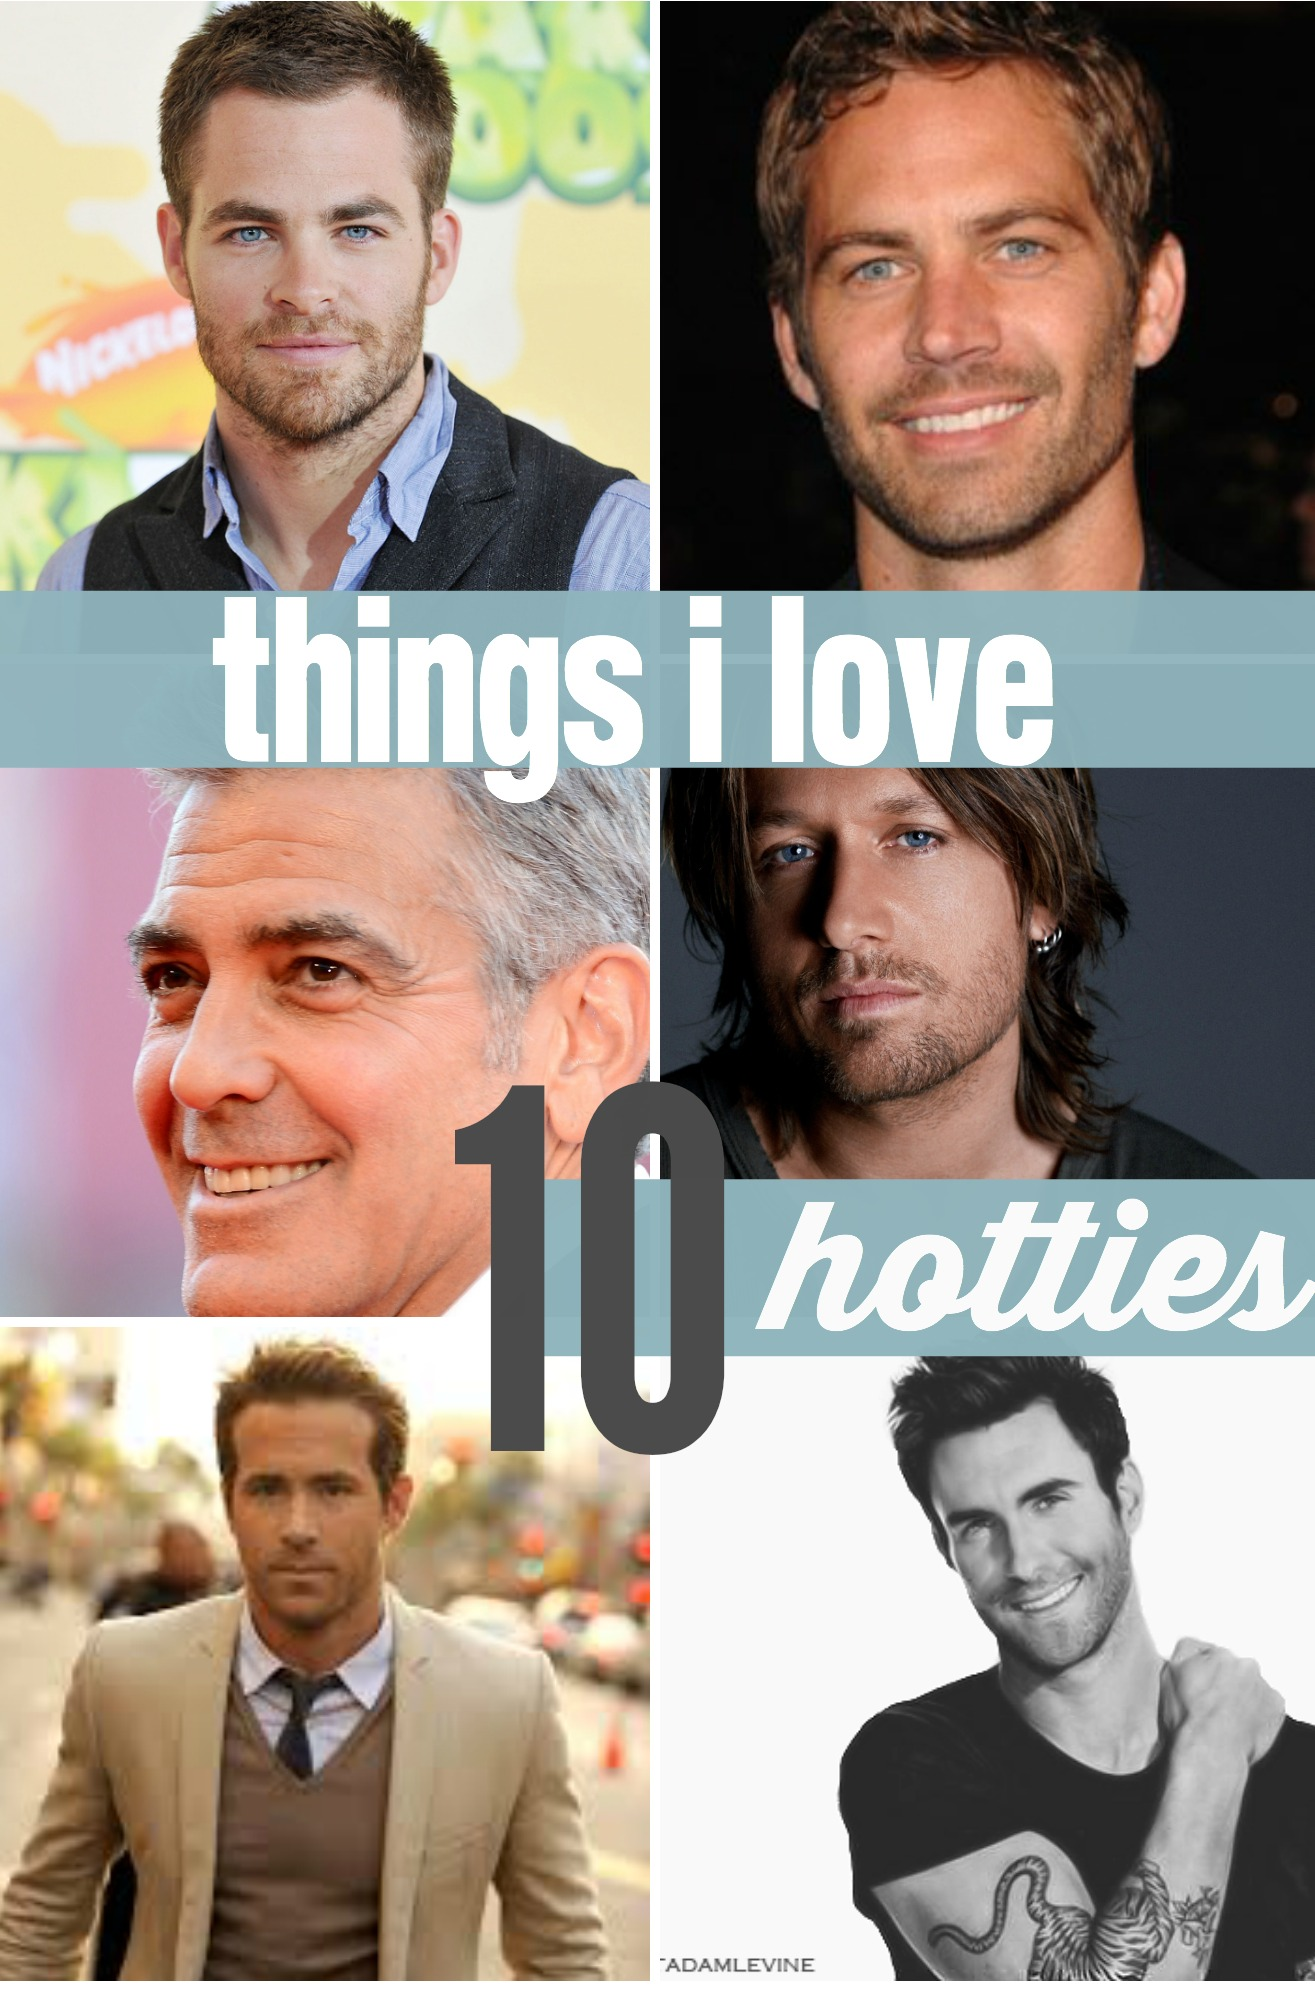 things i love hotties